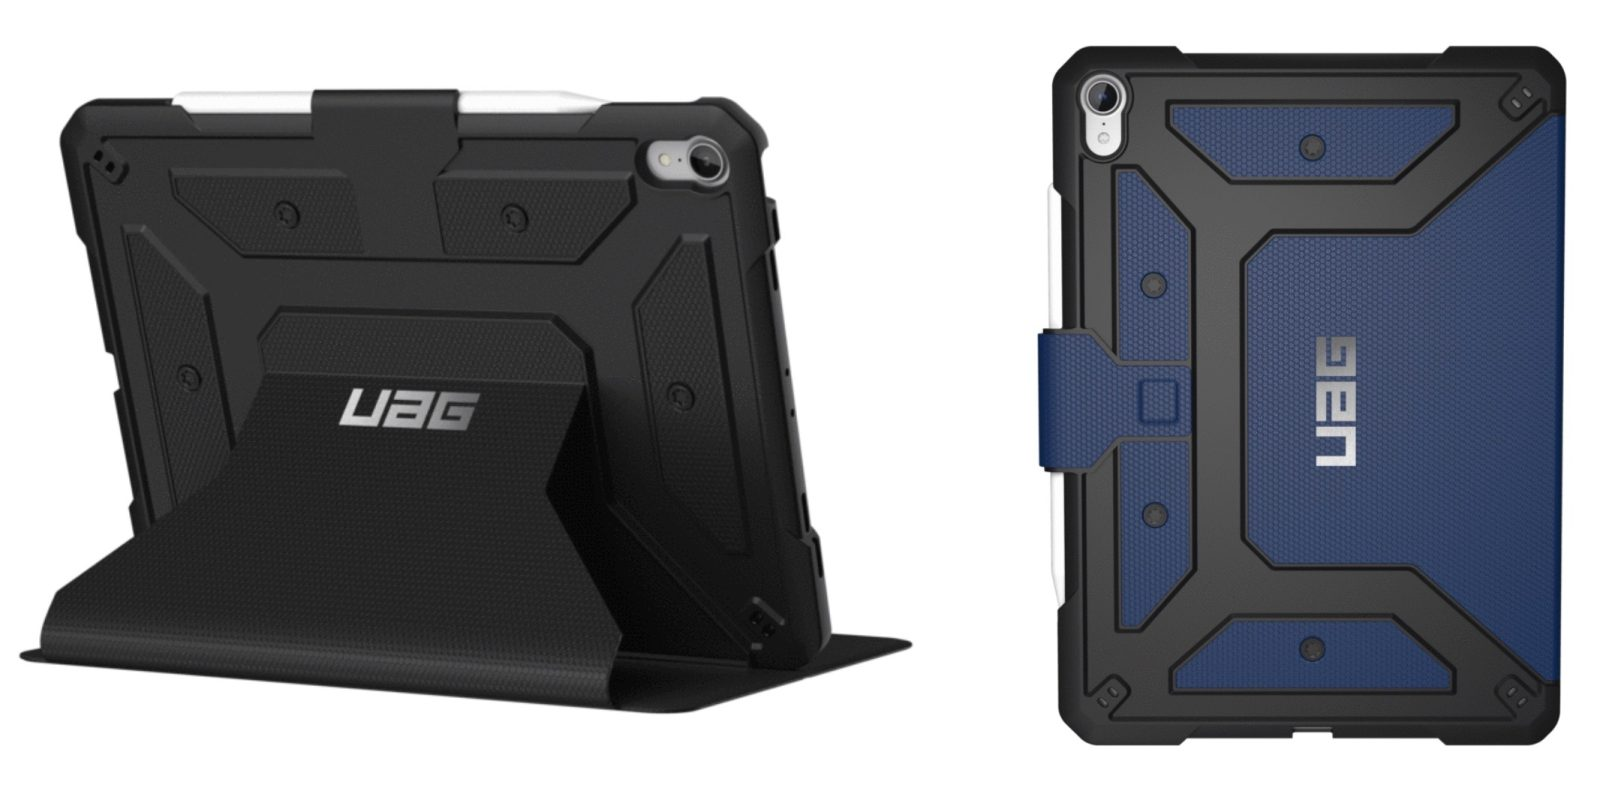 finest selection 228b6 4a843 UAG launches Metropolis case for new iPad Pro with adjustable ...